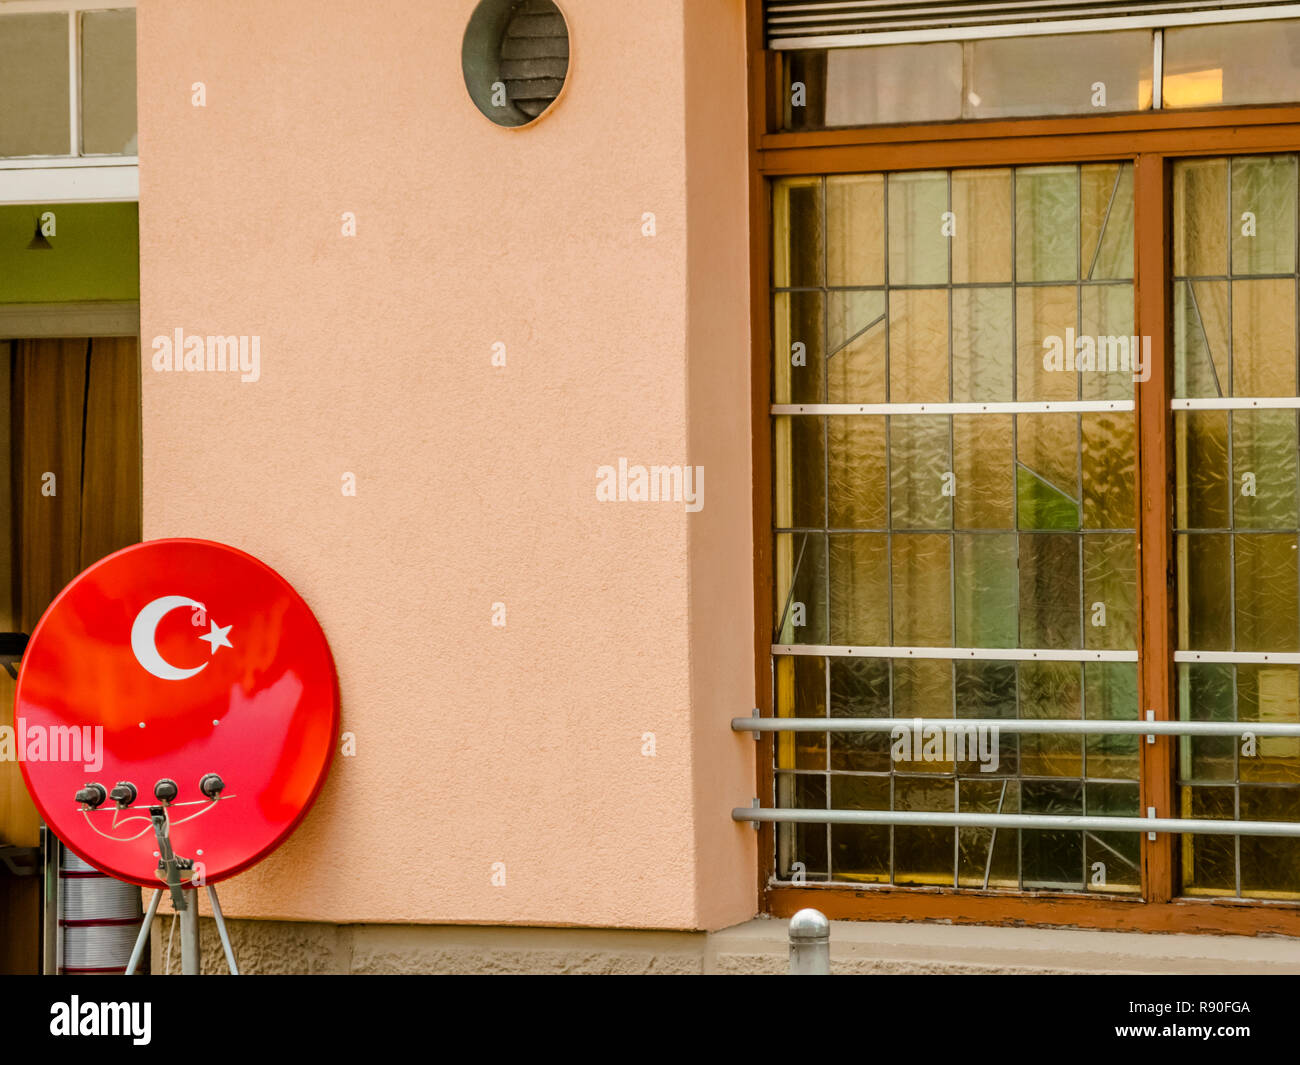 satellite receiver dish in the colors of the turkish national flag in front of a restaurant - Stock Image